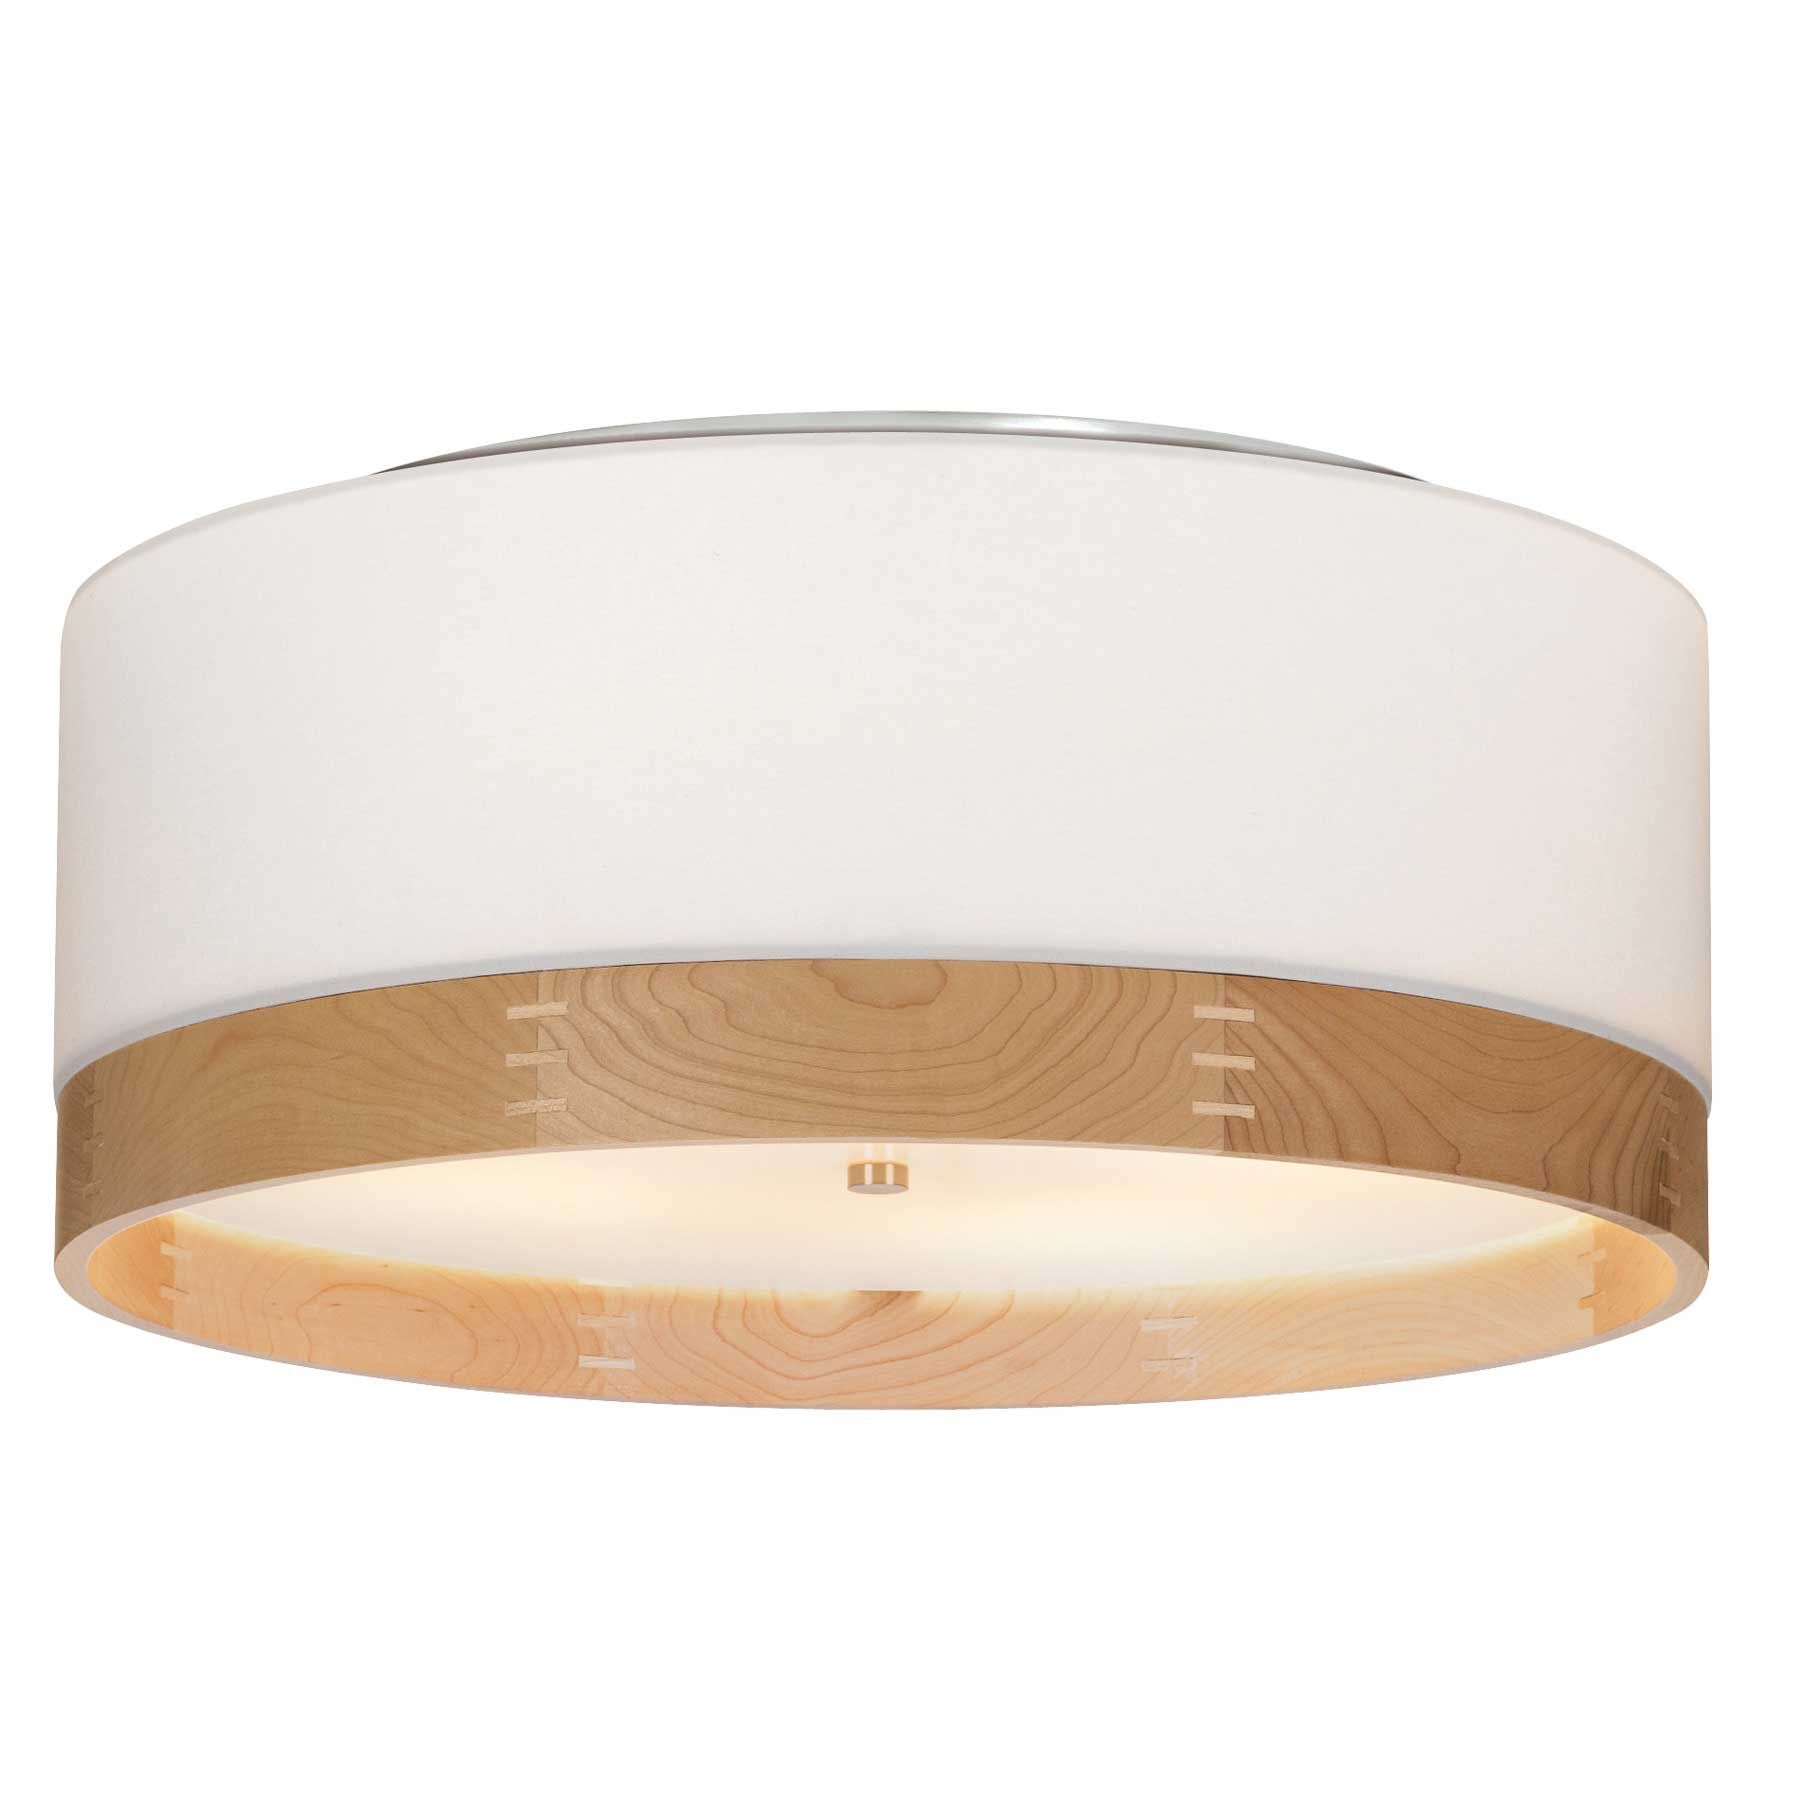 Topo Flush Mount Ceiling Light features a modern drum